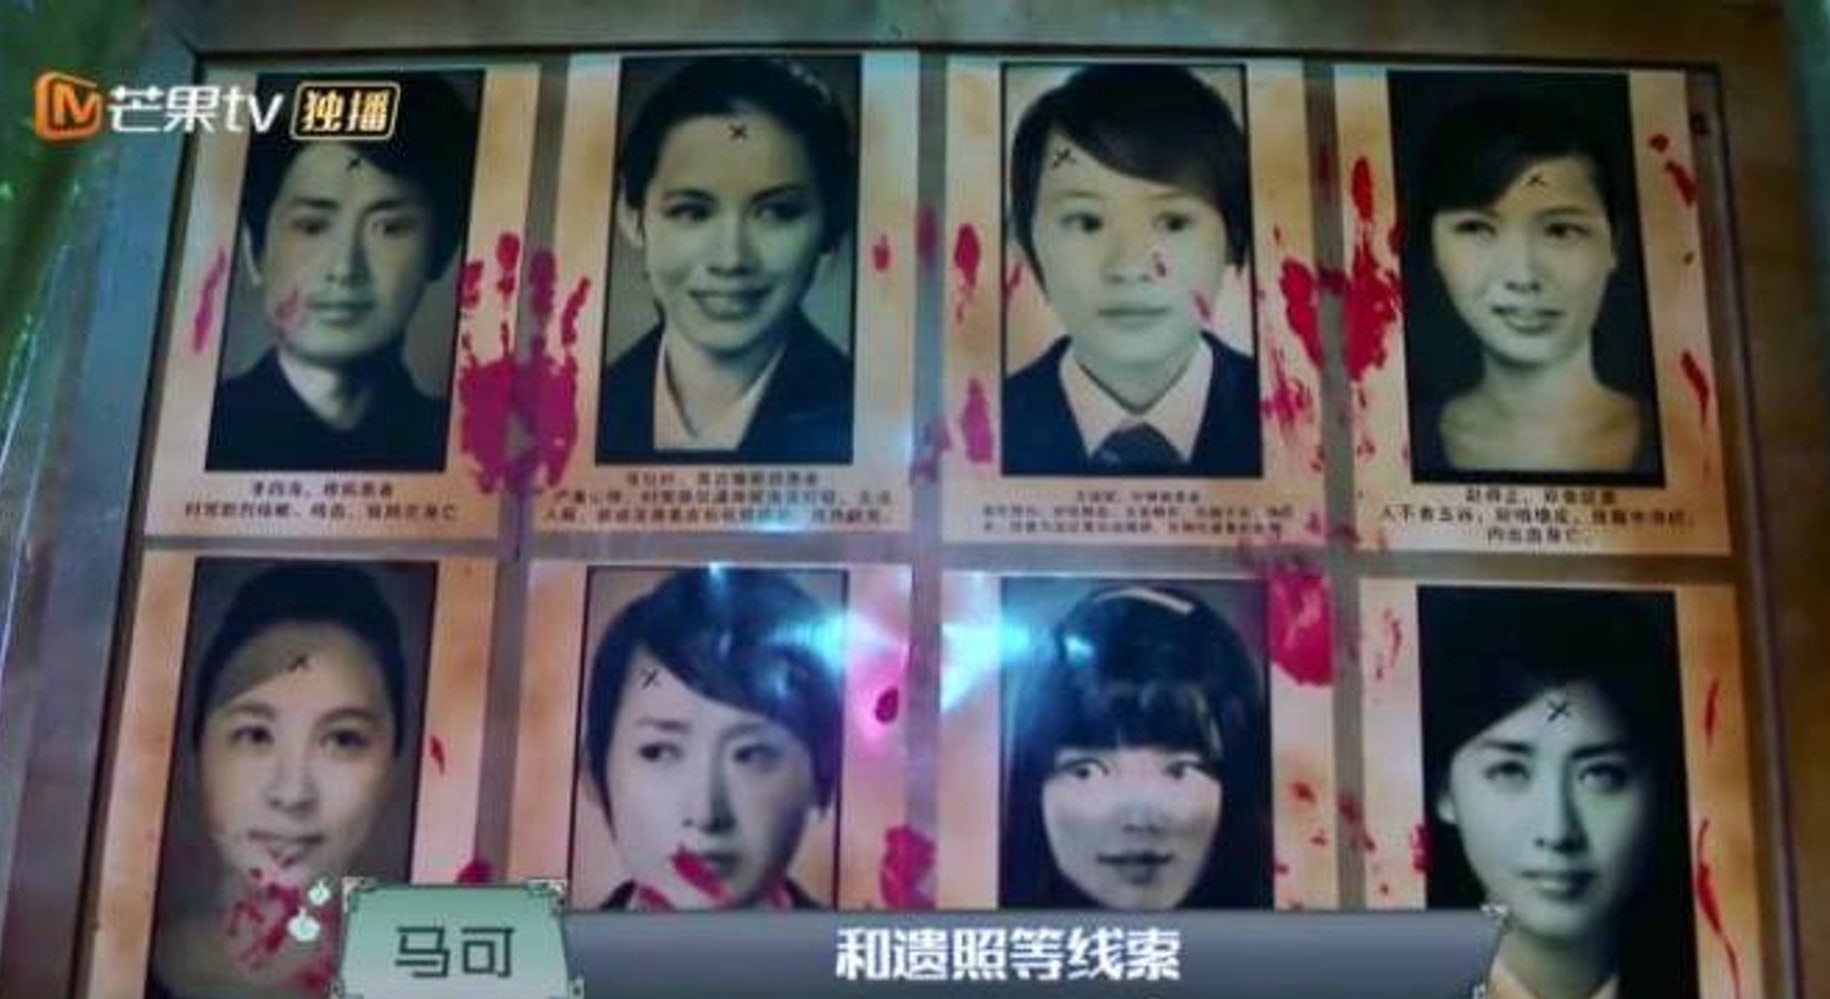 https://0.soompi.io/wp-content/uploads/2018/05/14233545/Chinese-show-morbid-photos.jpg